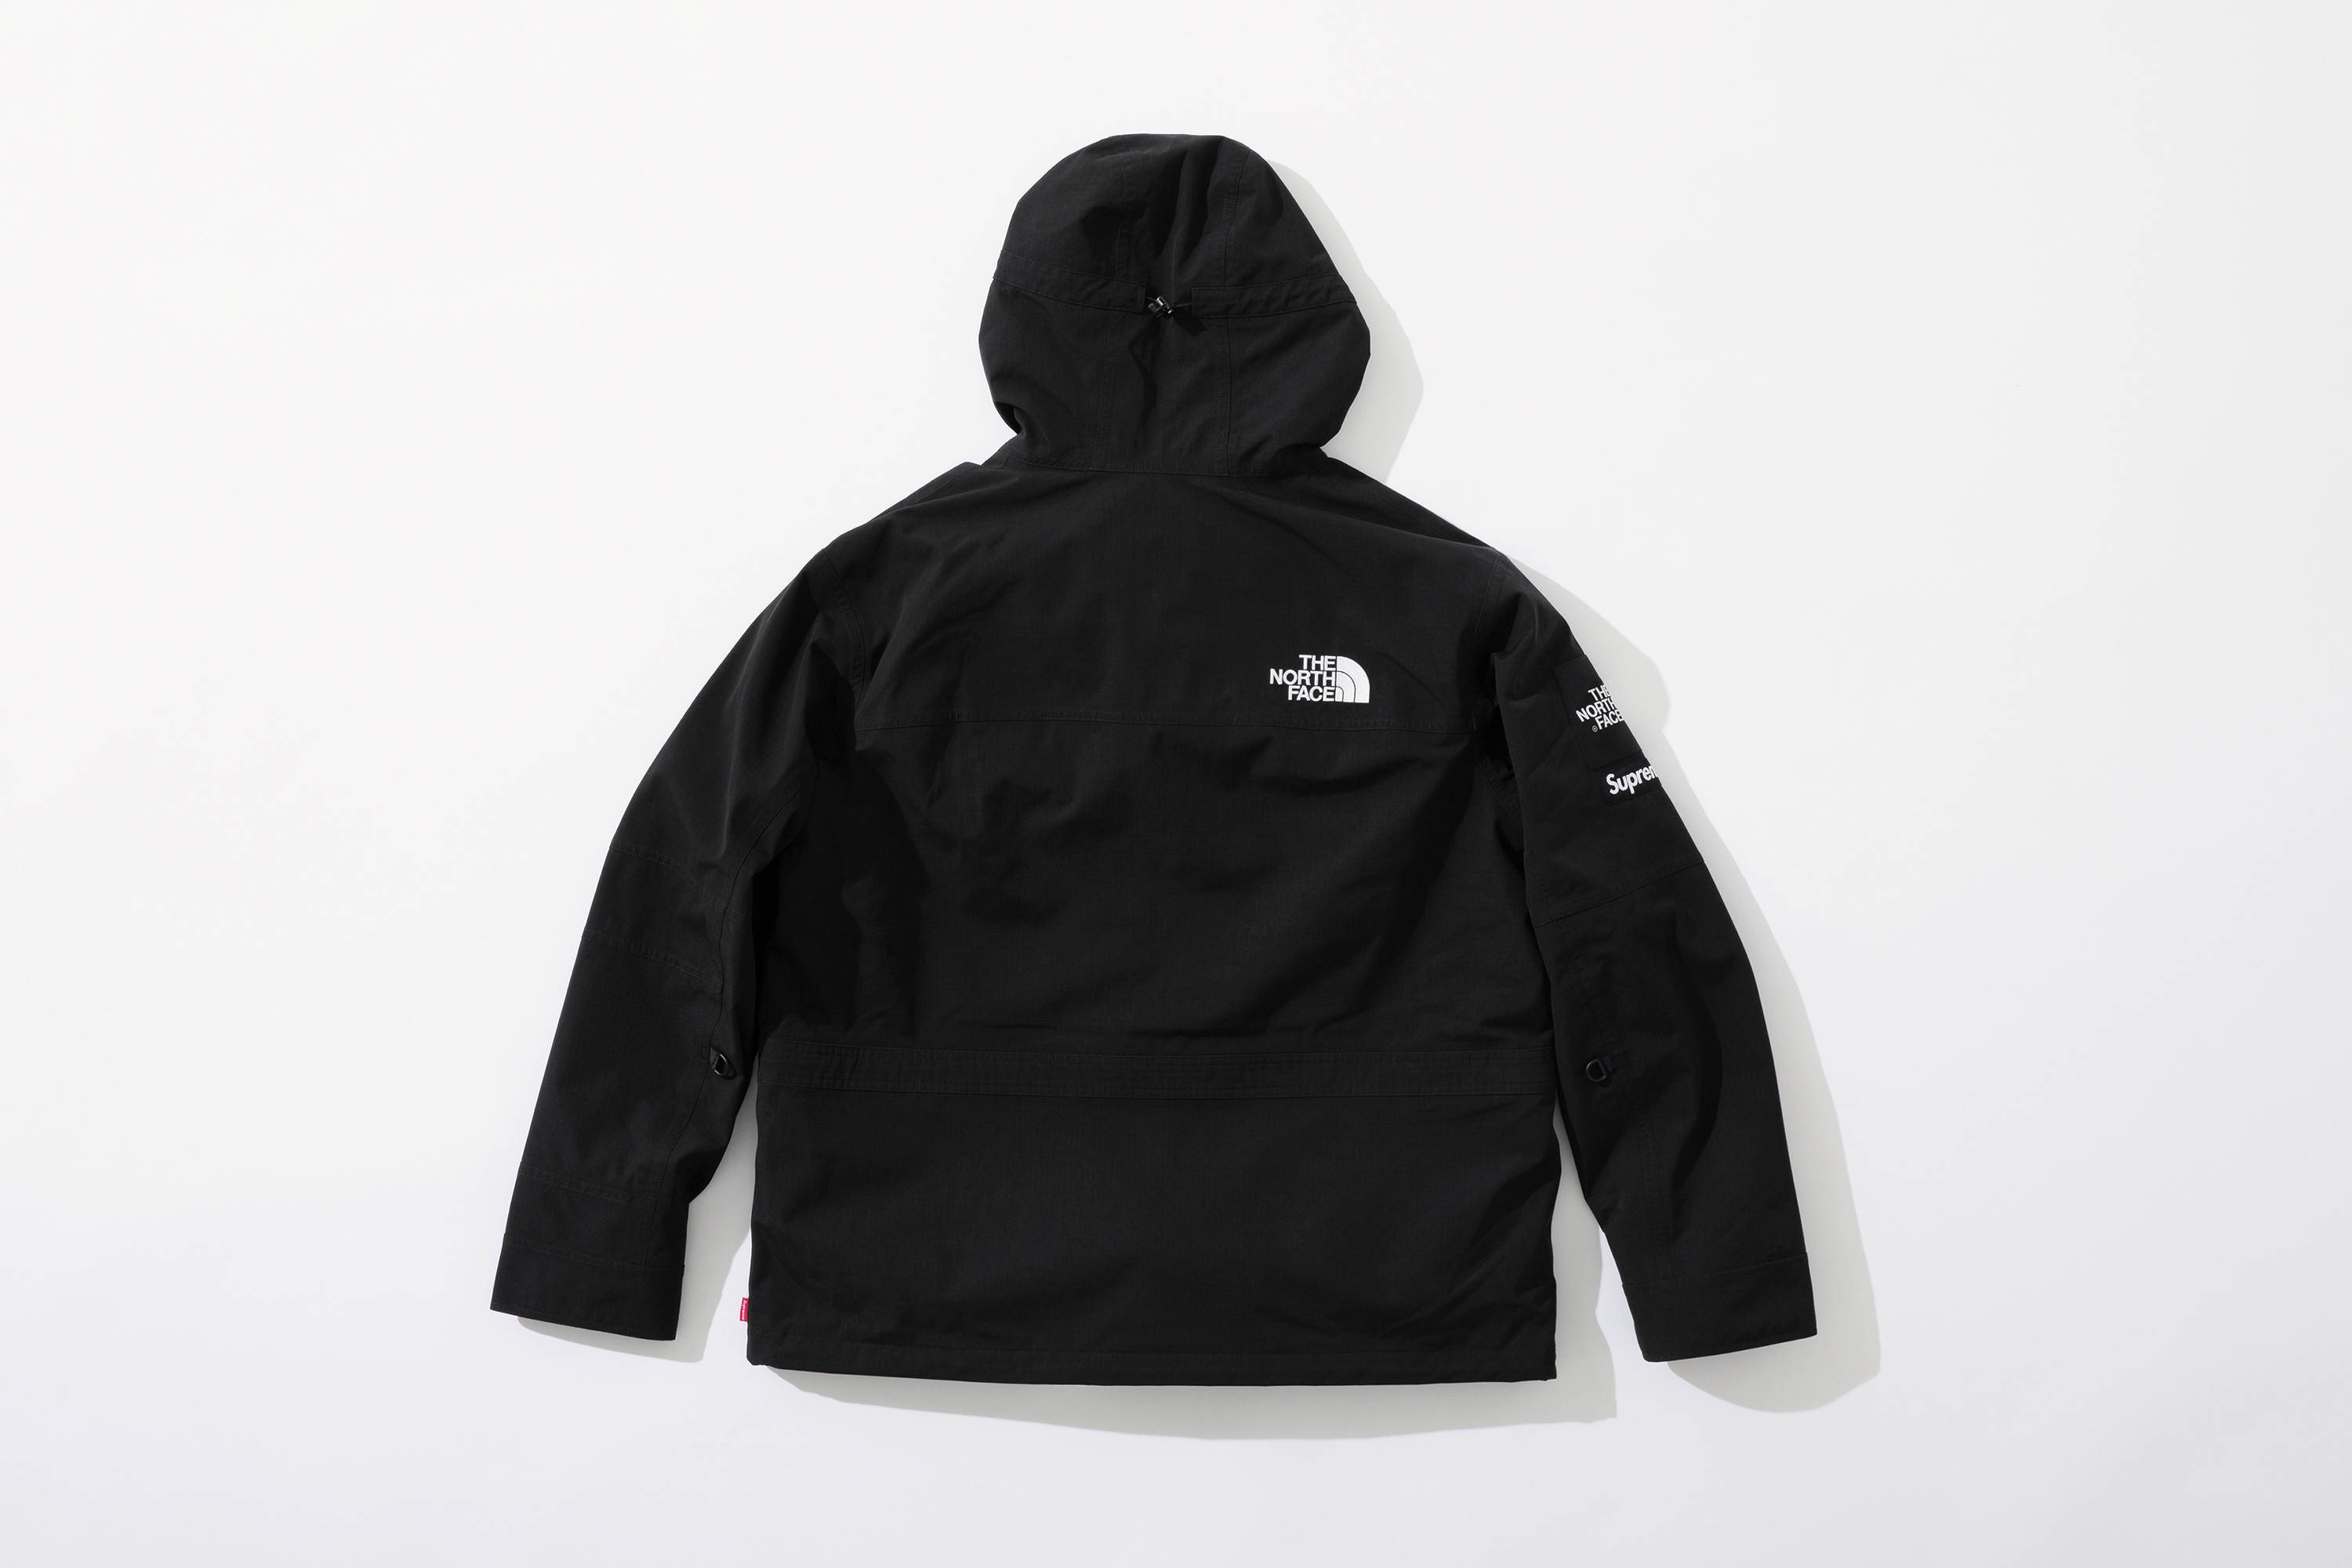 supreme-the-north-face-2018aw-2nd-delivery-release-20181201-week15